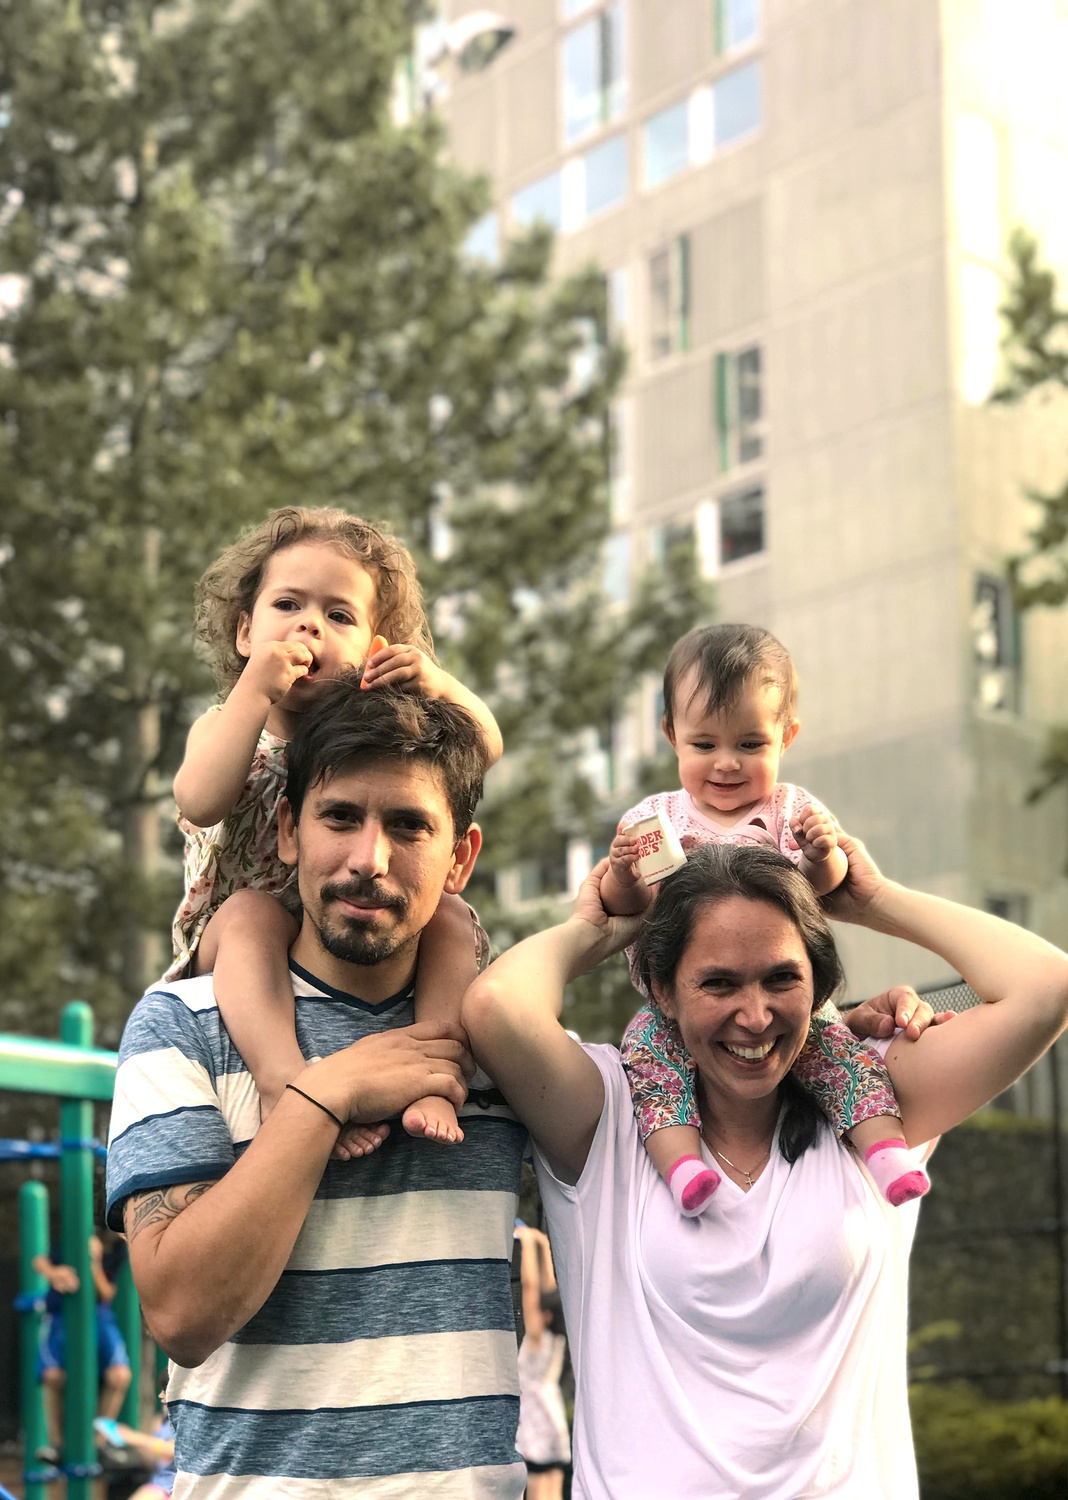 A fifth-year student at the Graduate School of Design, Ugarte recently returned to Cambridge from Chile with his wife and daughters.